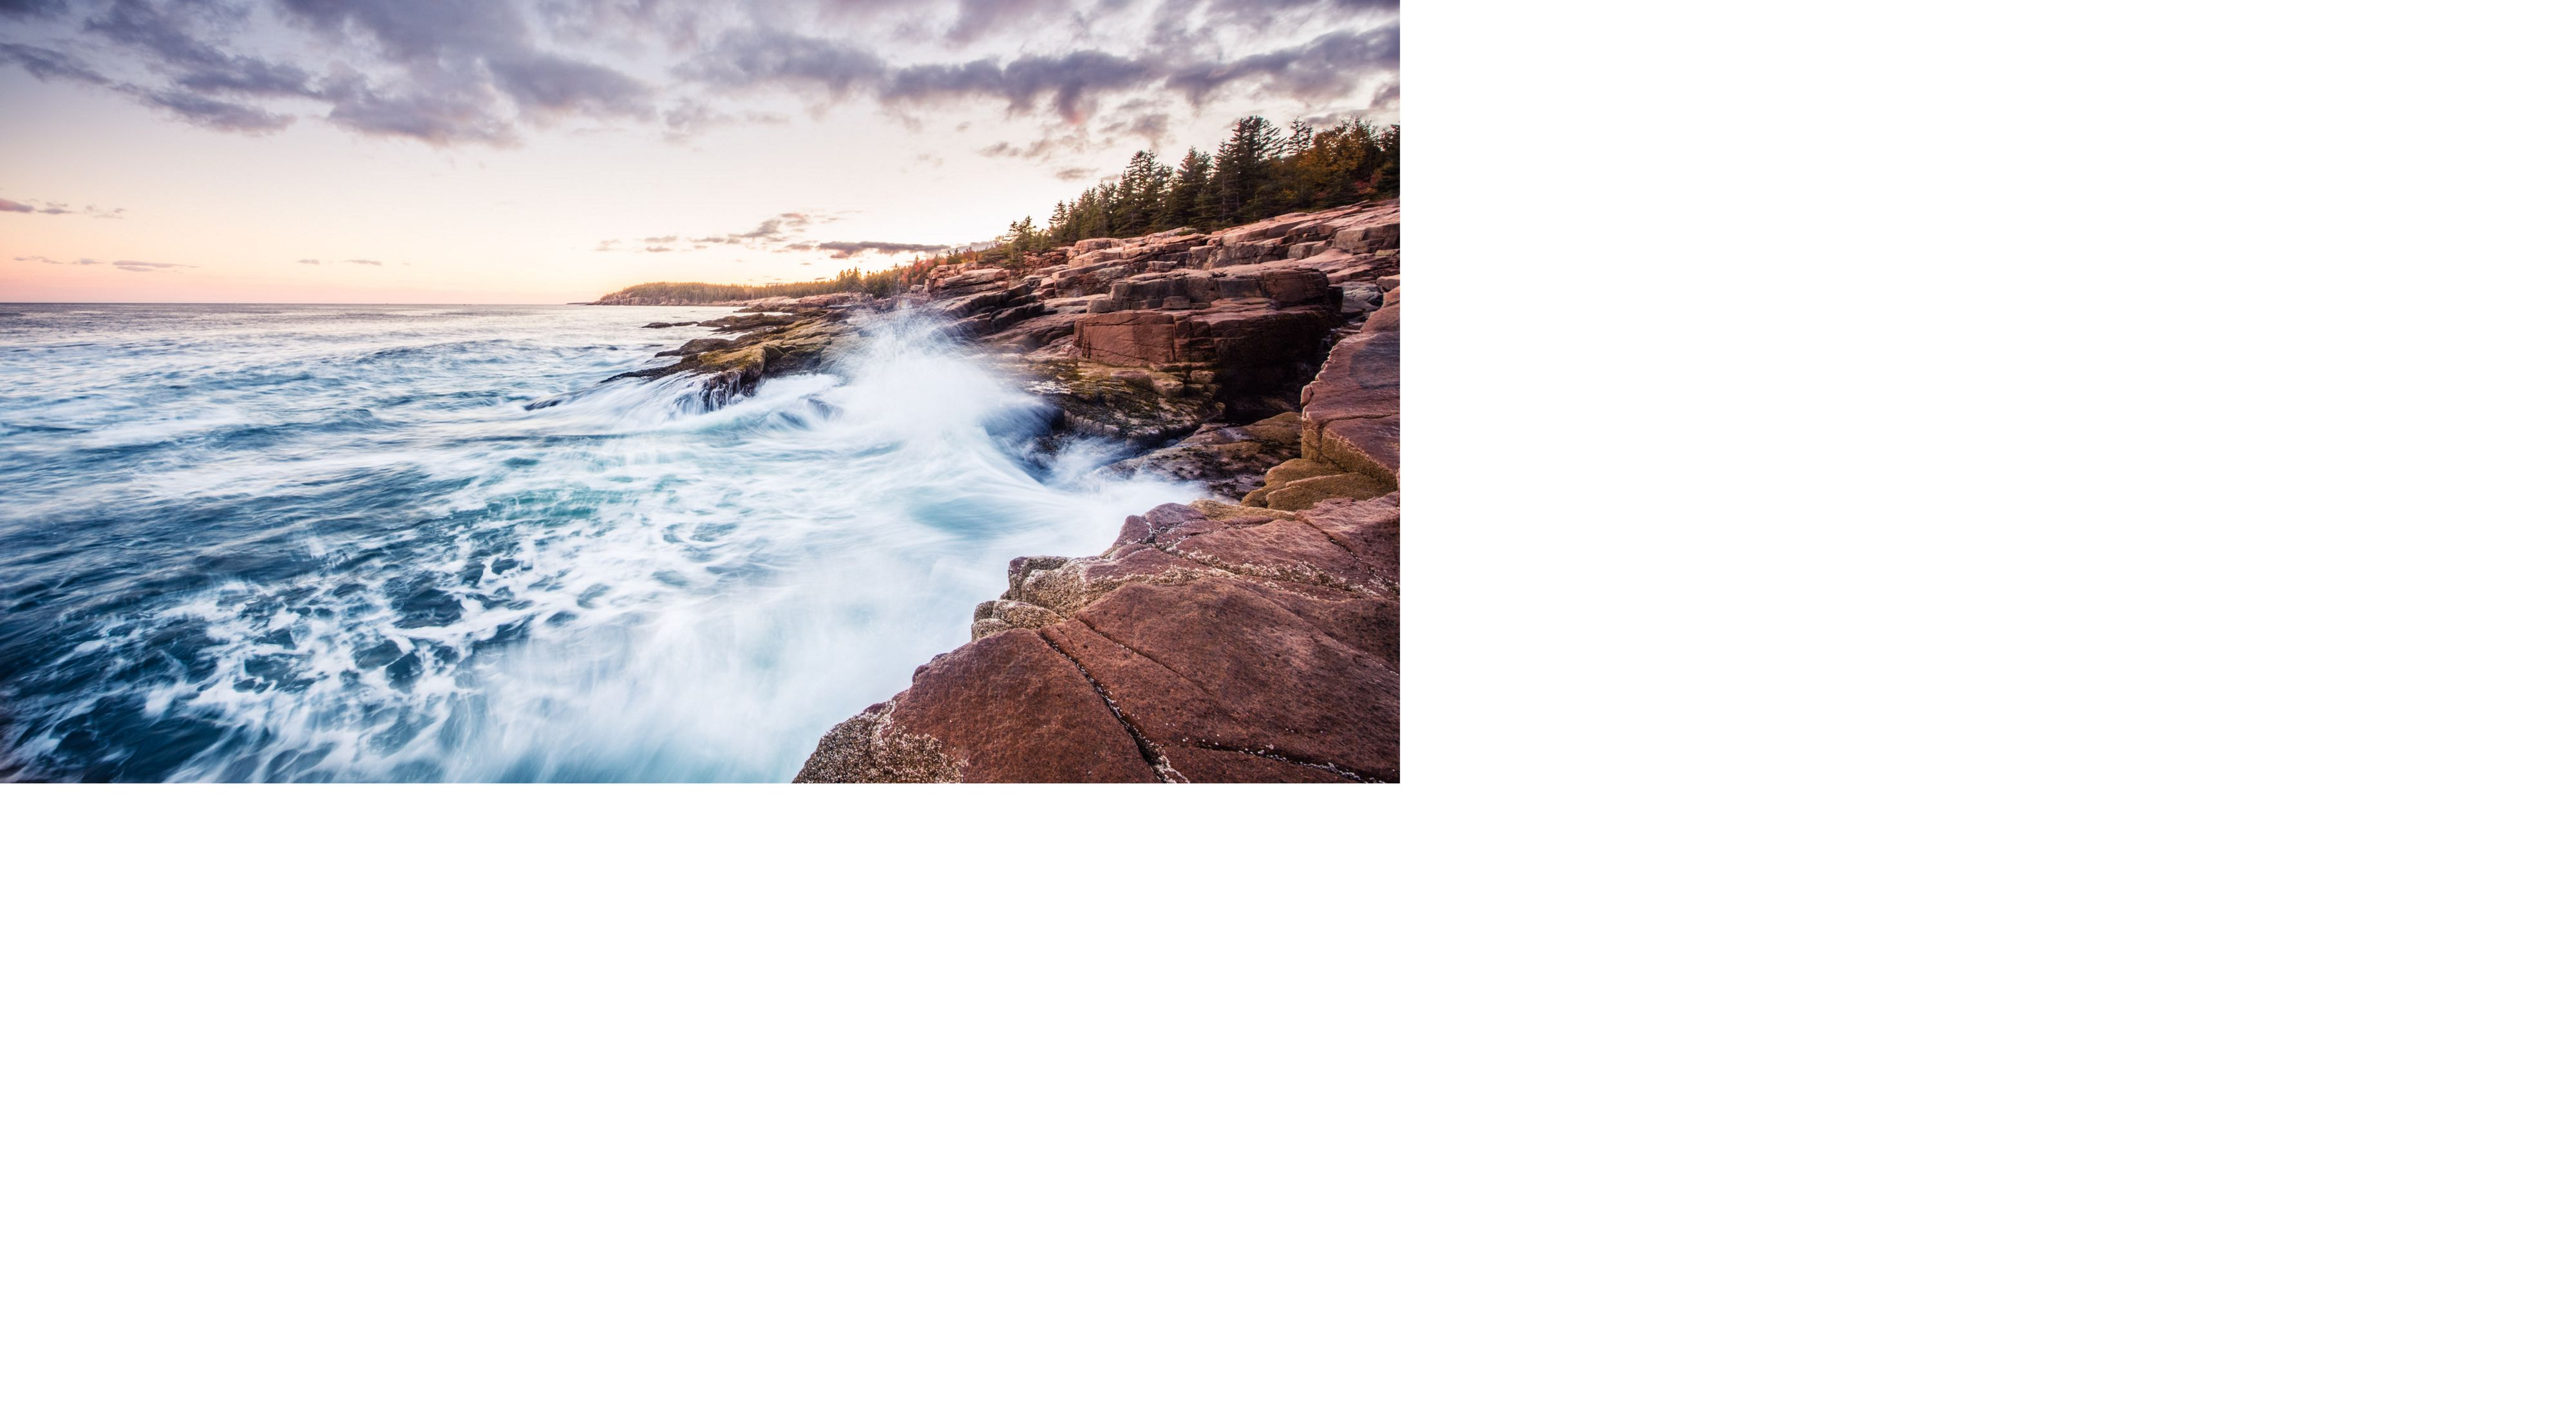 (ALL INTERNAL RIGHTS & LIMITED EXTERNAL RIGHTS) October 2015. Waves crashing against the rocky coast of Acadia National at sunset in Maine. The park service and vistor's celebrate 100 years of parks in August 2016. Photo credit: © Nick Hall